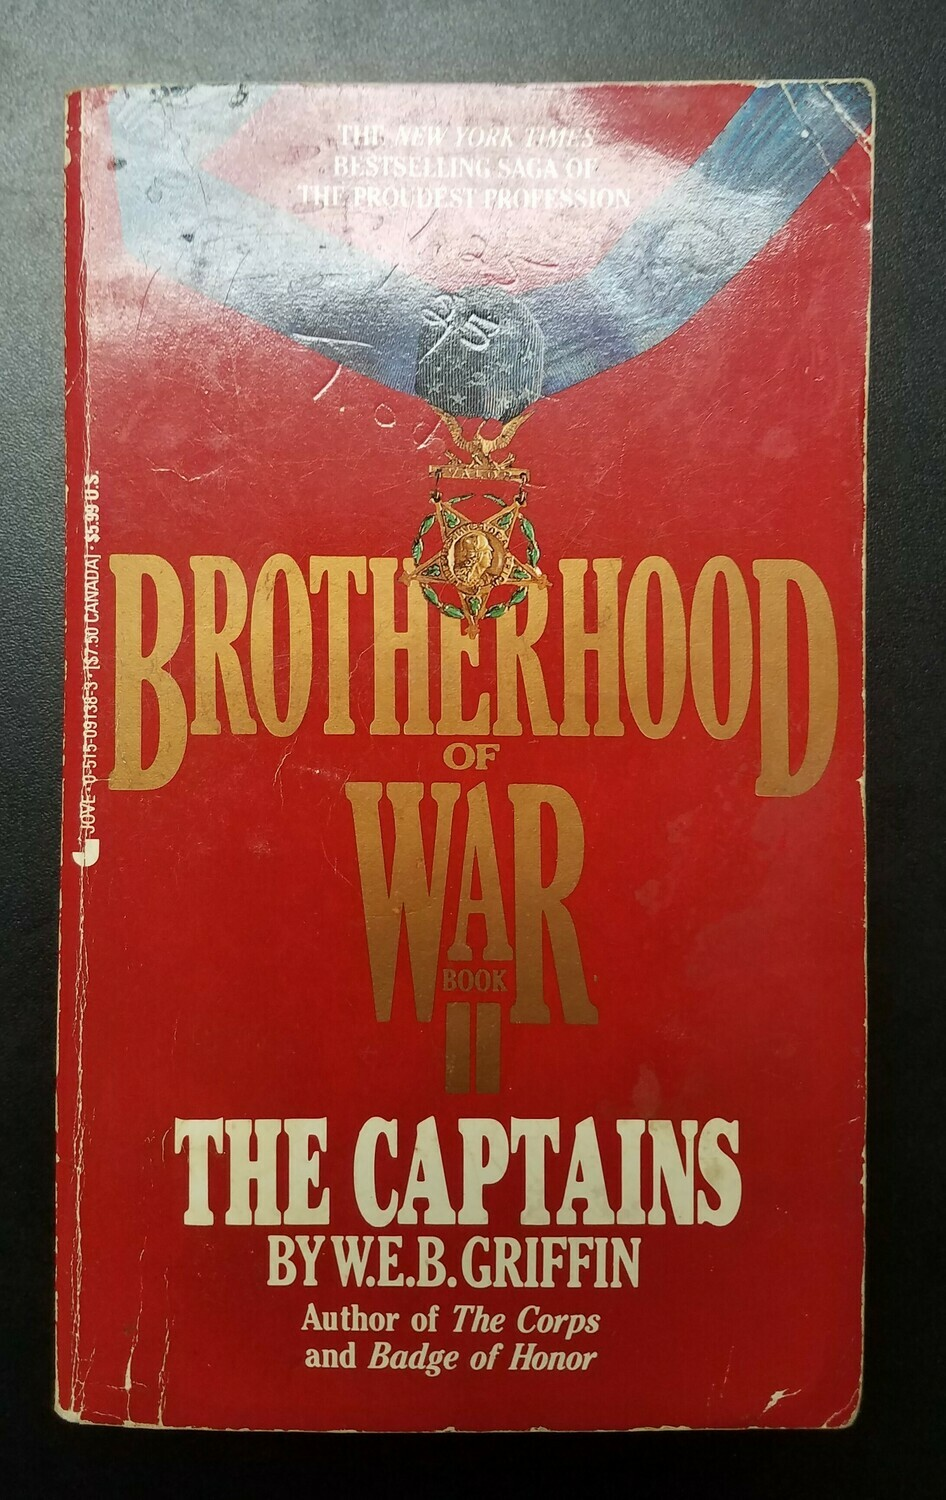 Brotherhood of War: The Captains by W.E.B. Griffin